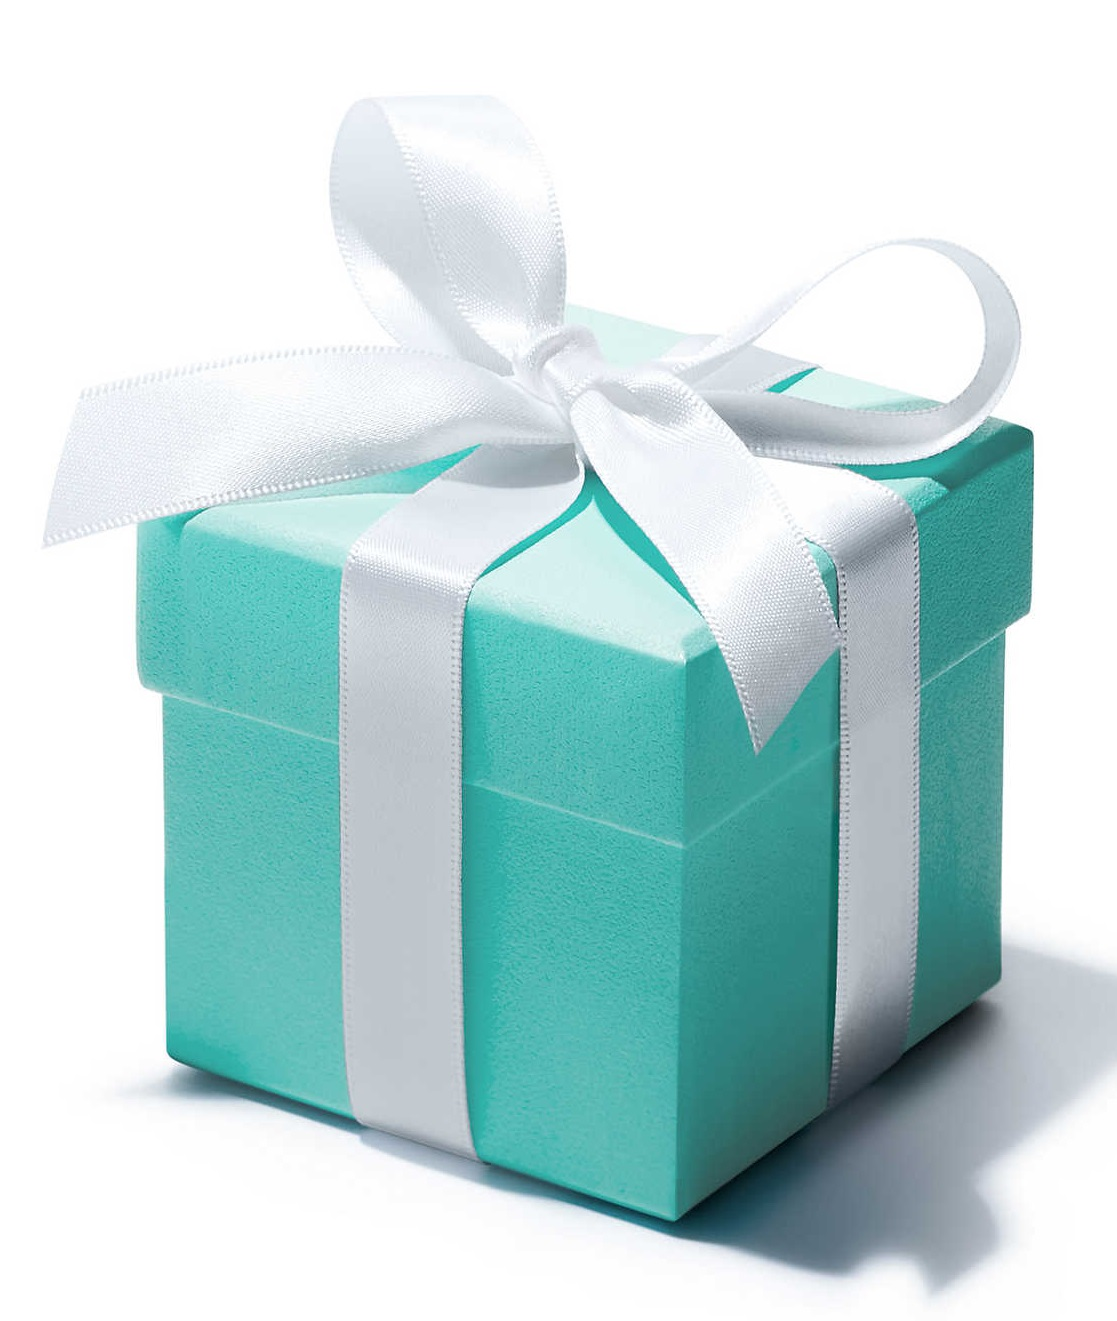 Why the boxes from Tiffany are so iconic